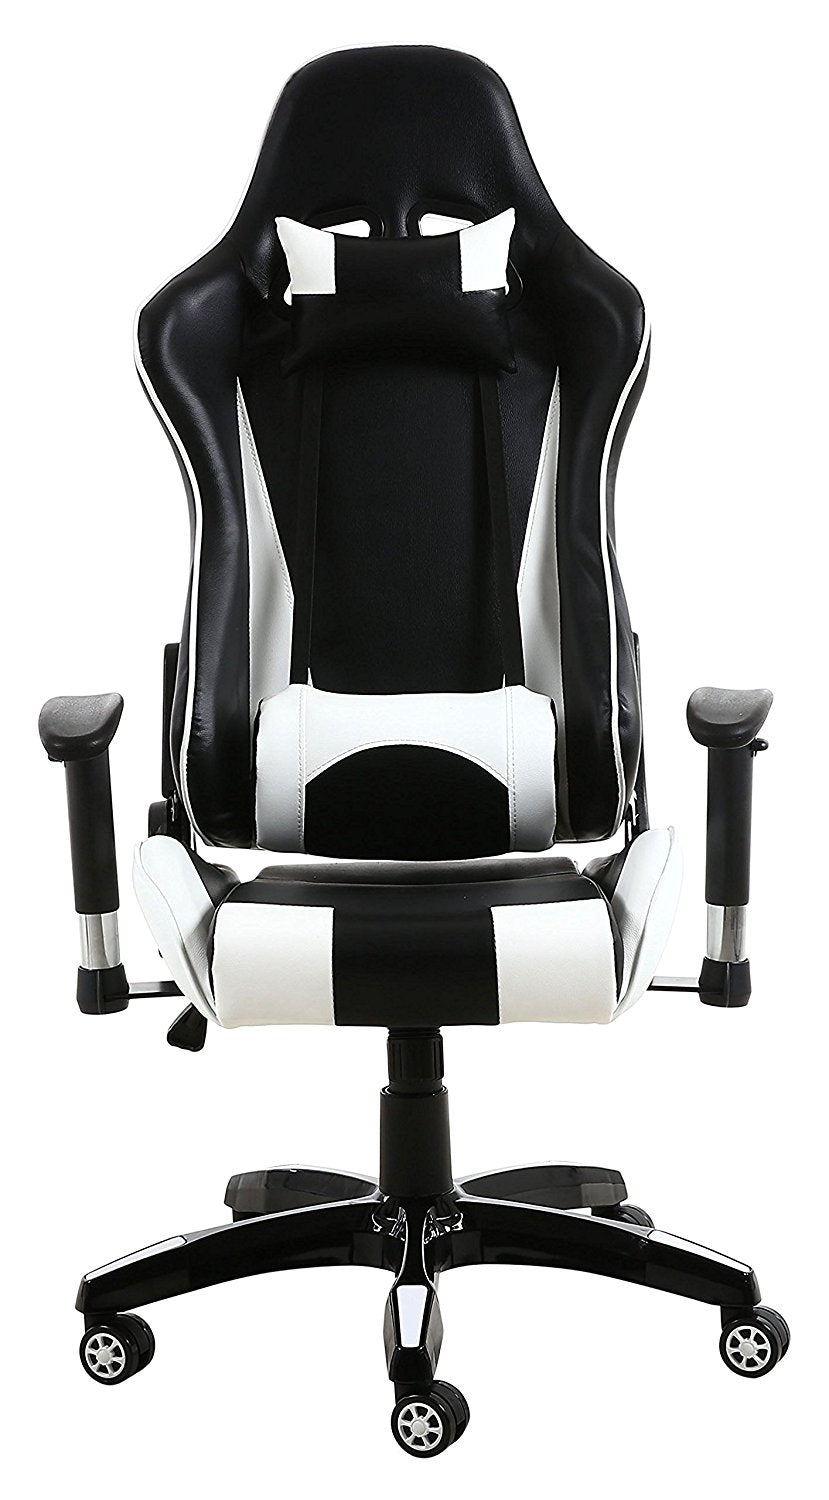 Executive Leather High Back Office Gaming Chair